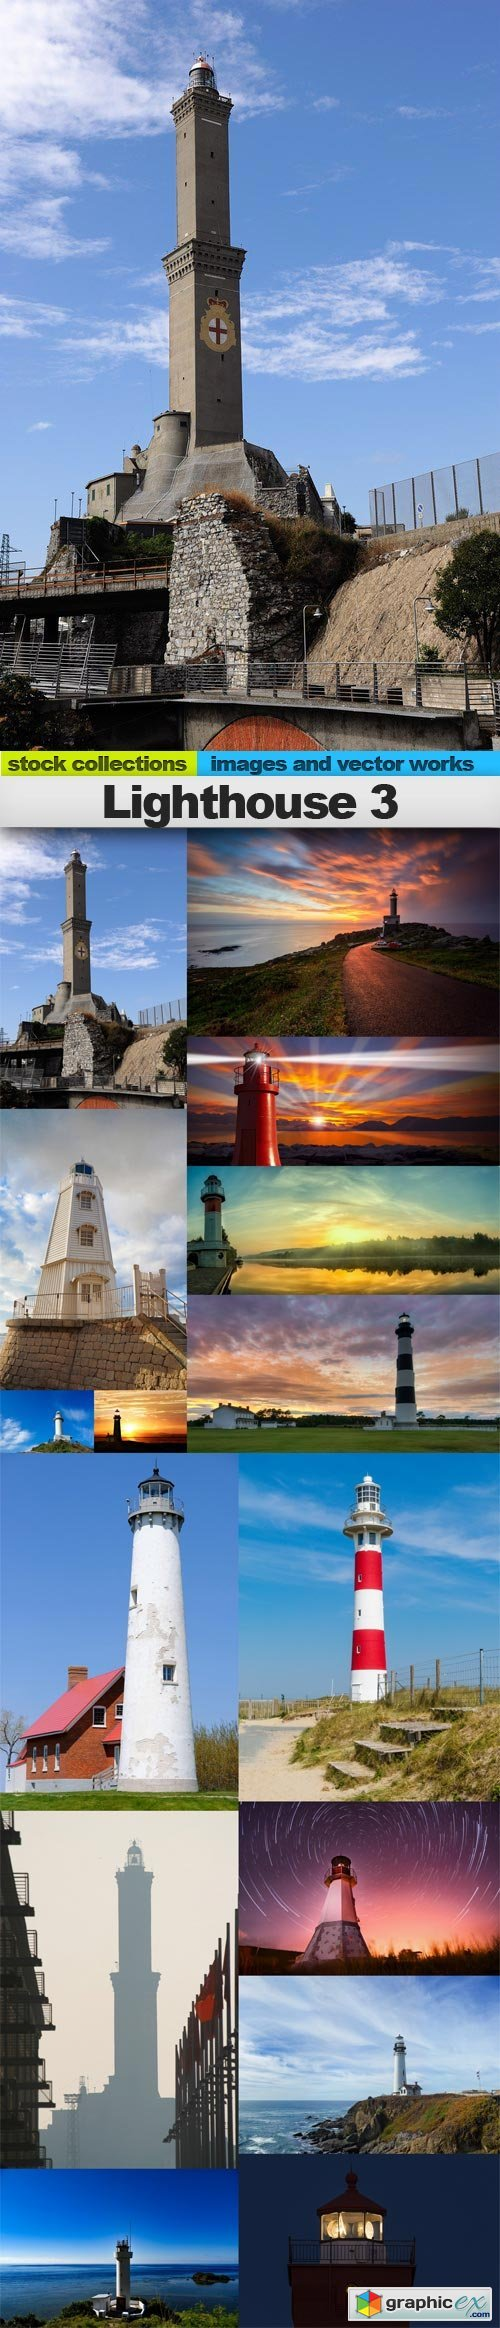 Lighthouse 3, 15 x UHQ JPEG